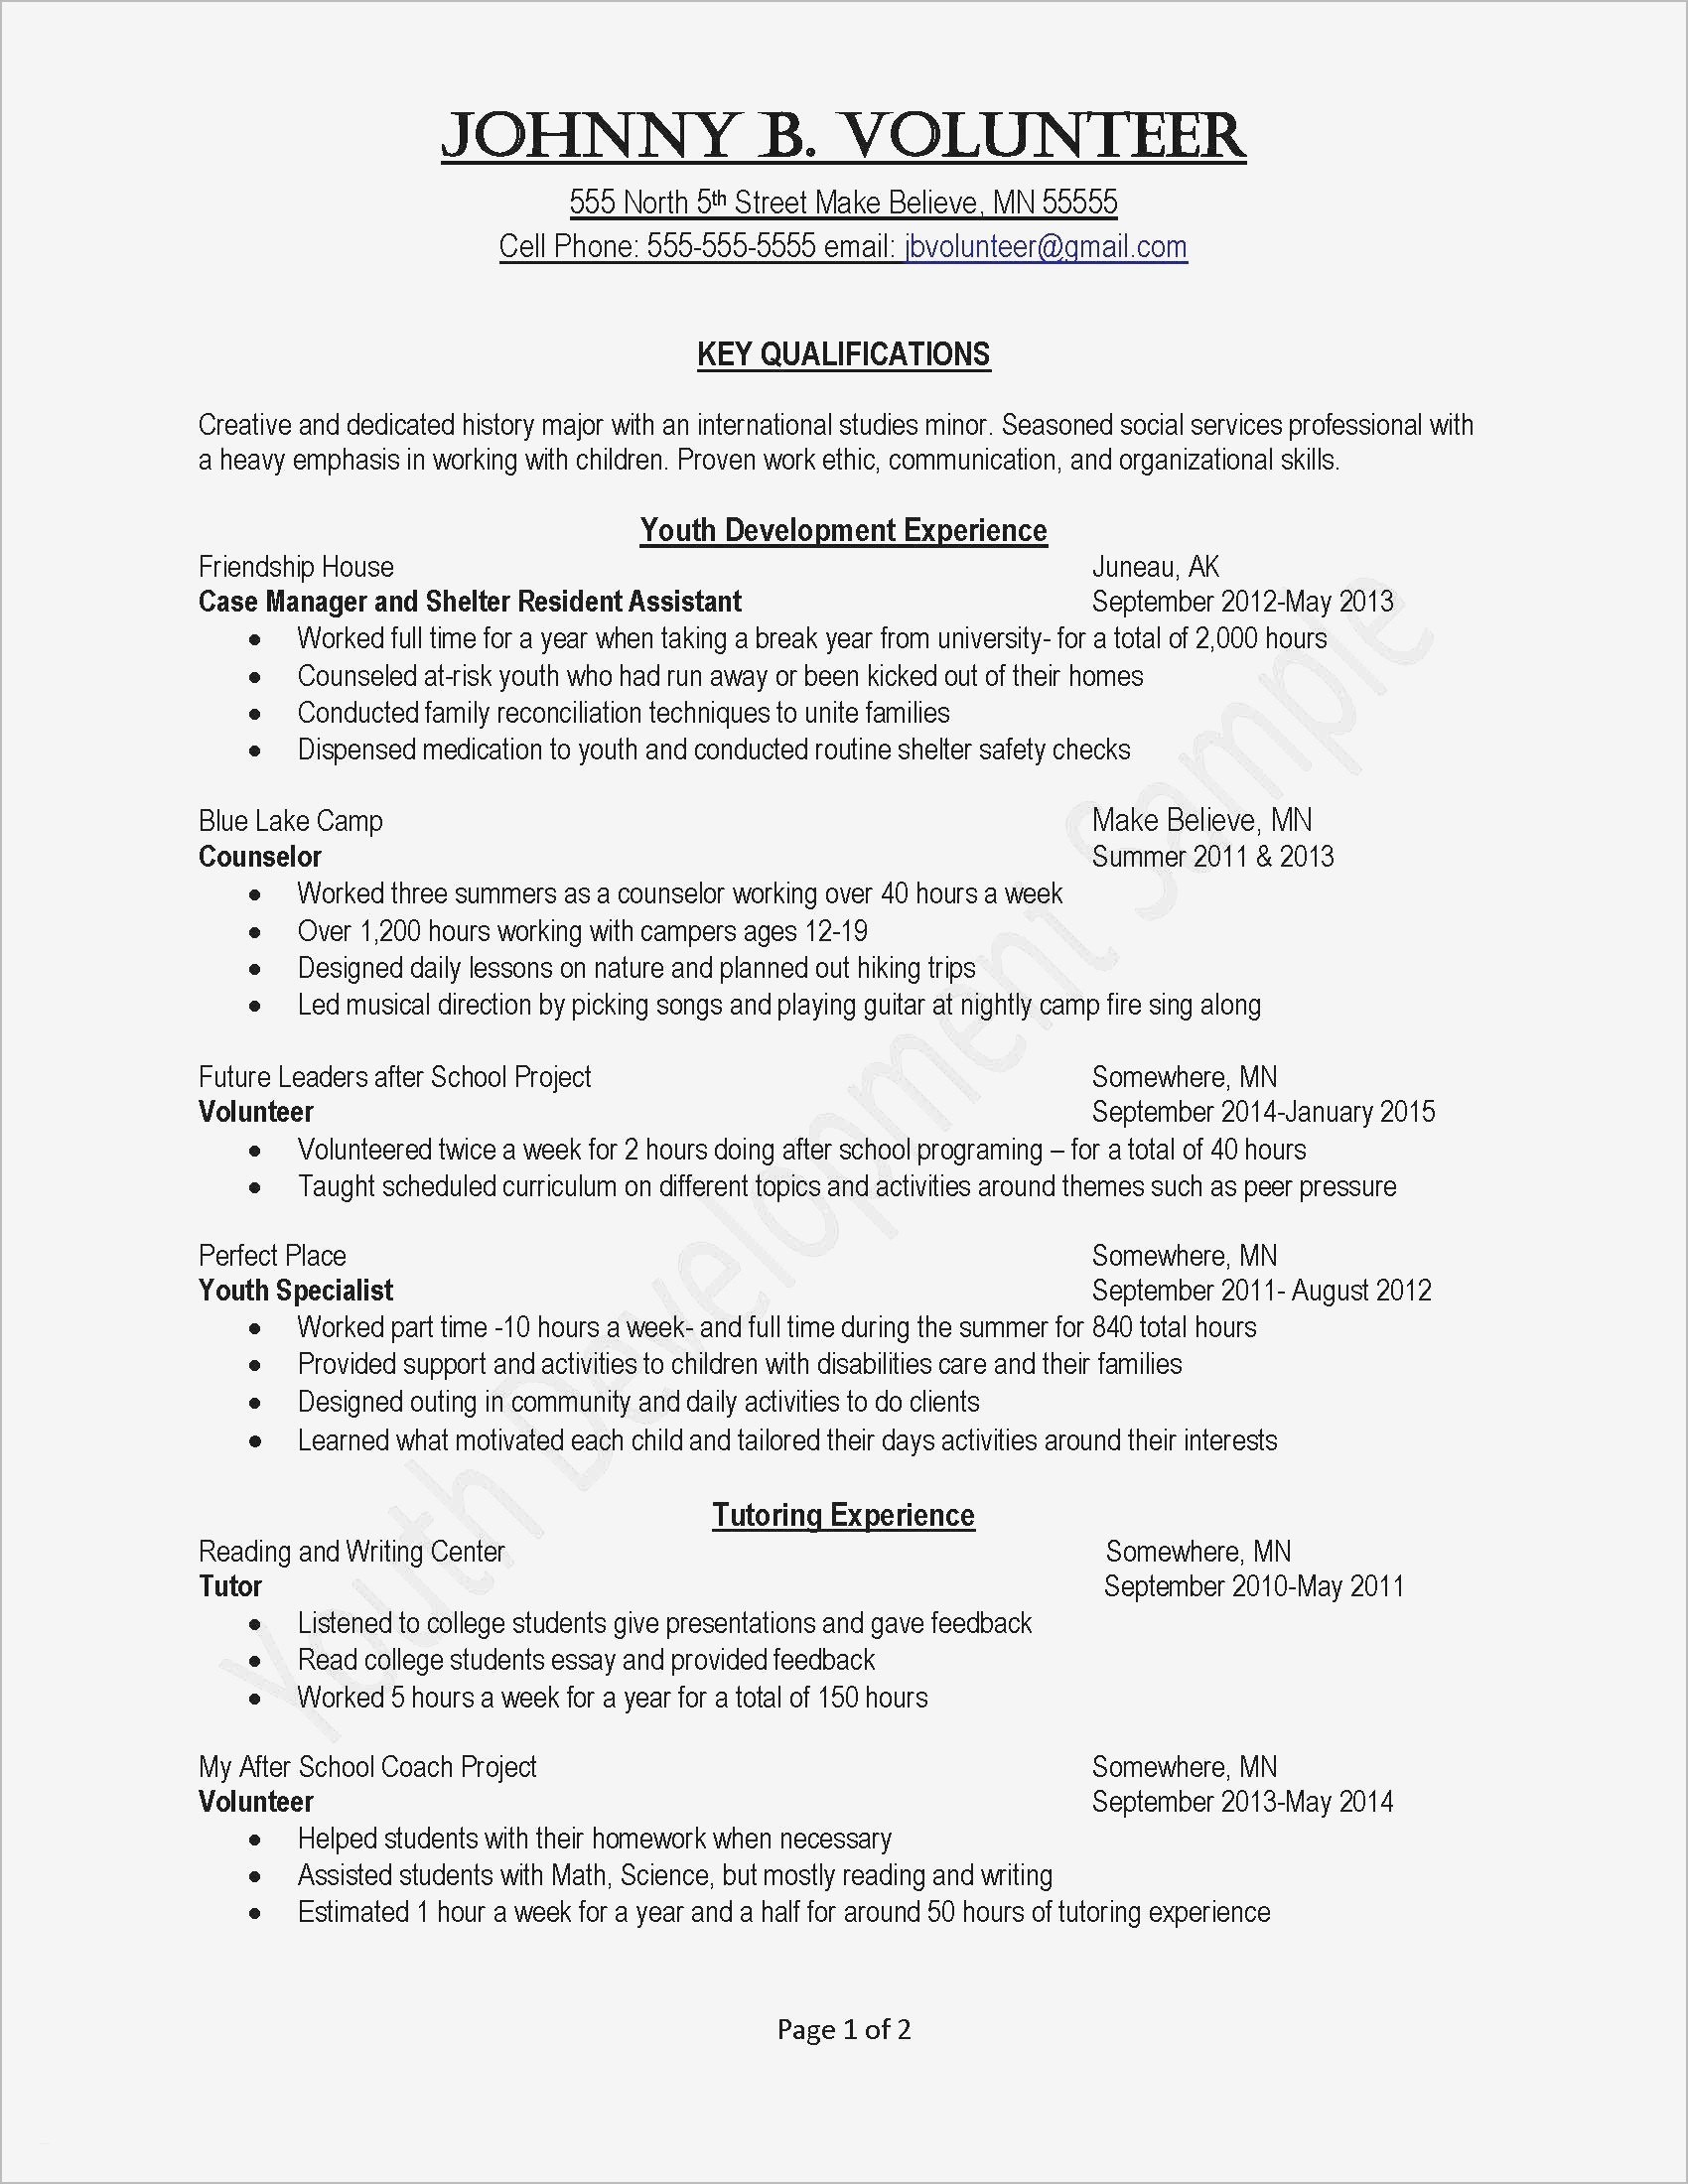 Graphic Design Cover Letter Template - Cover Letter for Graphic Designer Job 38 Luxury Graphic Design Cover